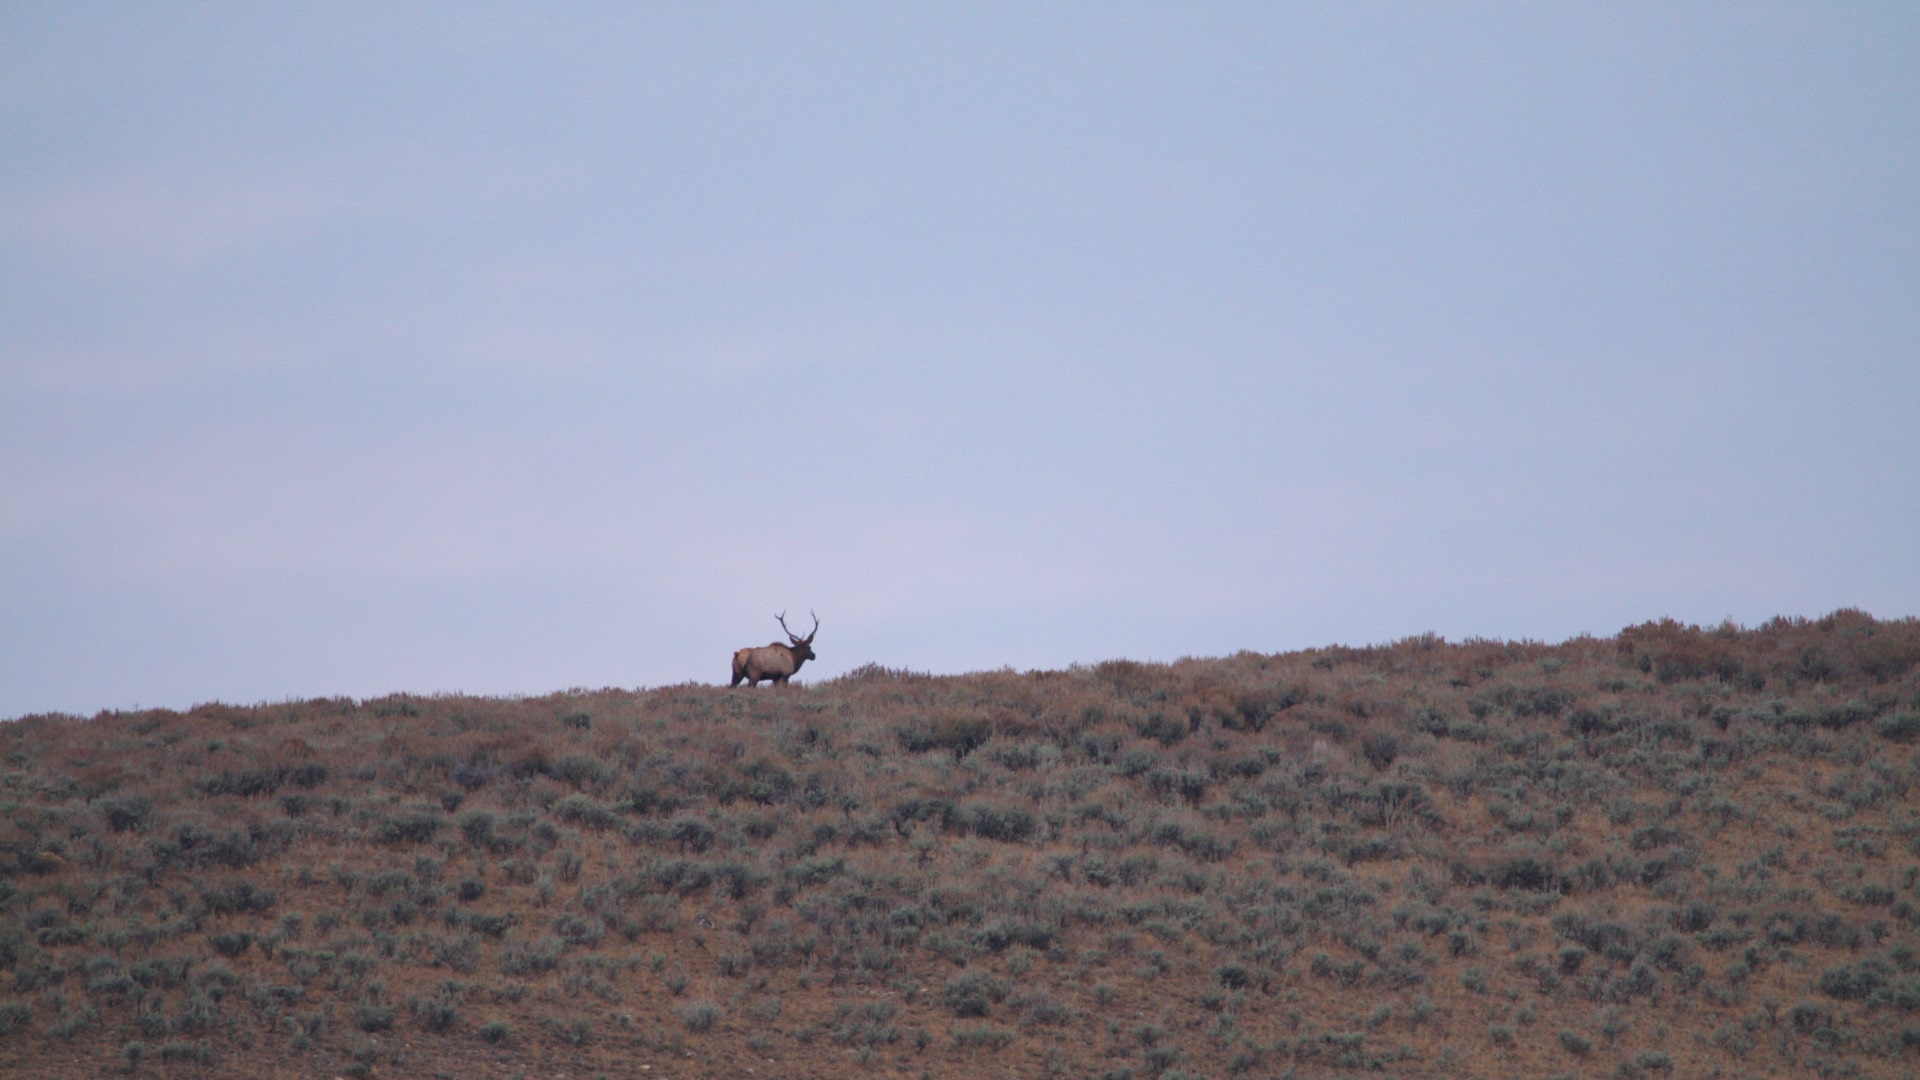 Big Game Hunting Ranch For Sale Montana Arrow Ranch